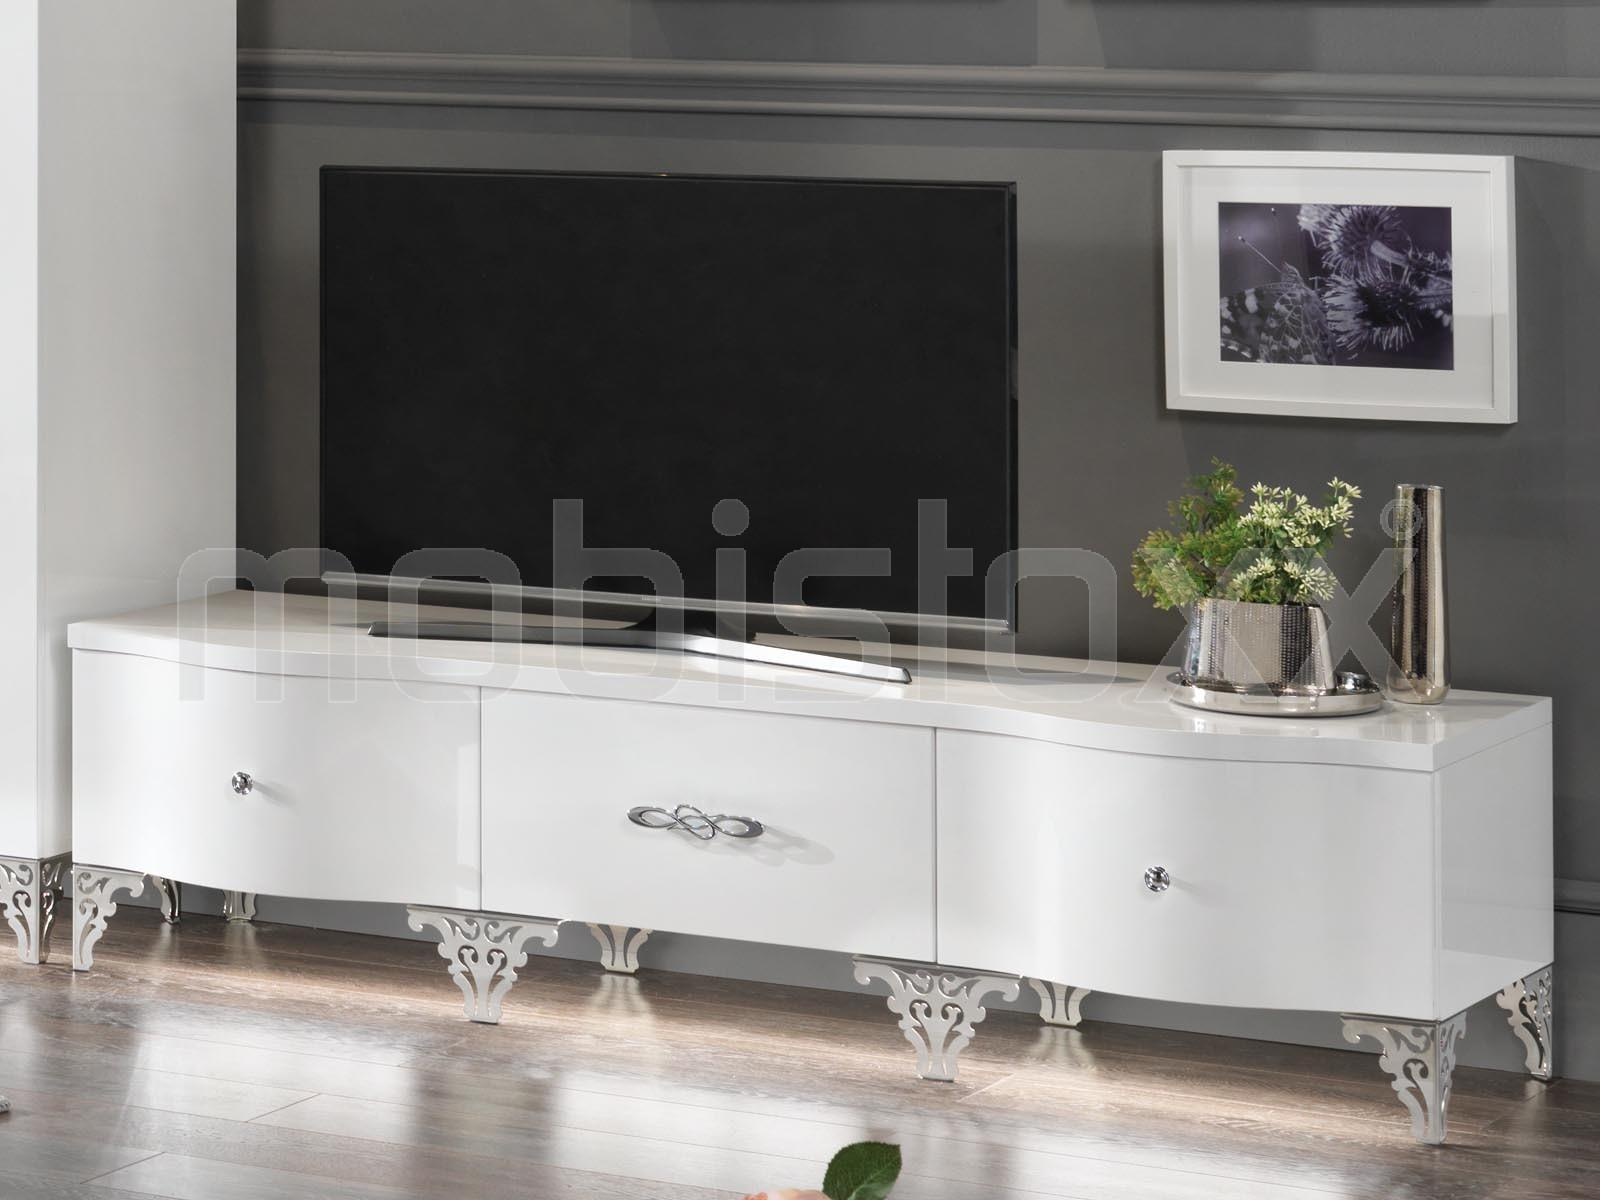 Mobistoxx Awesome Meuble Tvhifi Cosmos Portes Niches Chez  # Meuble Tv Zeus